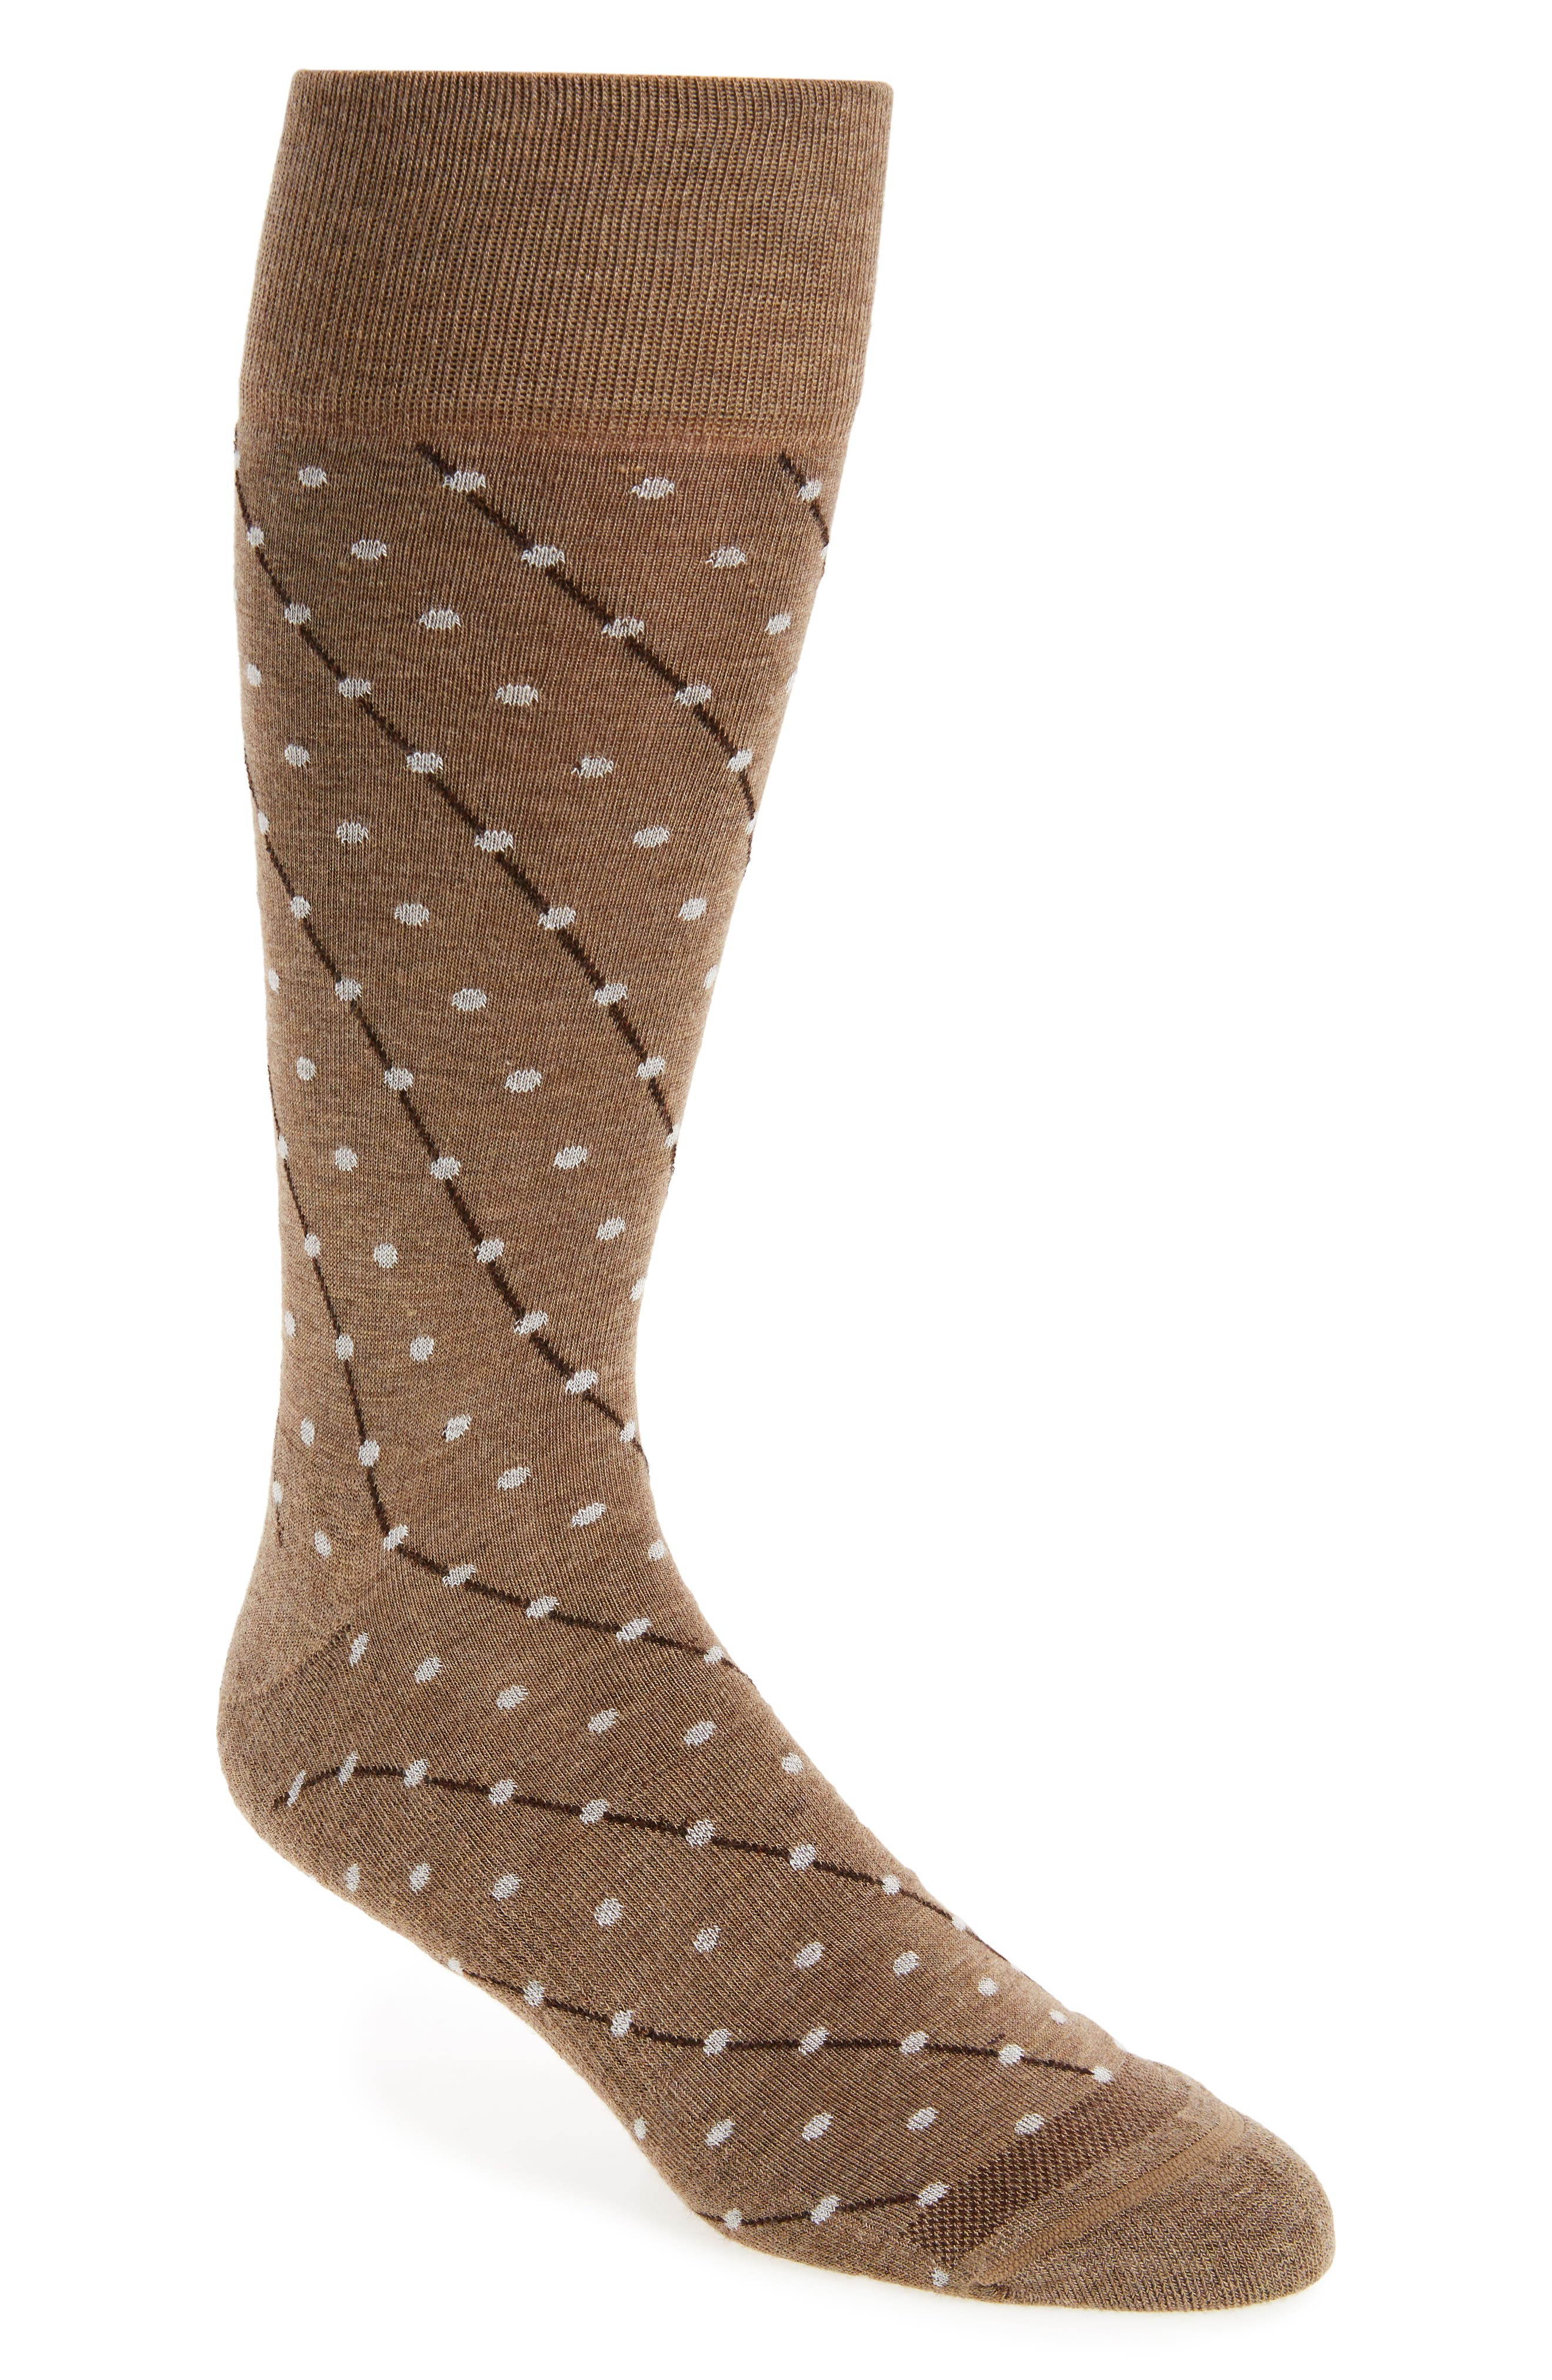 Dot Socks,                         Main,                         color, Taupe Heather